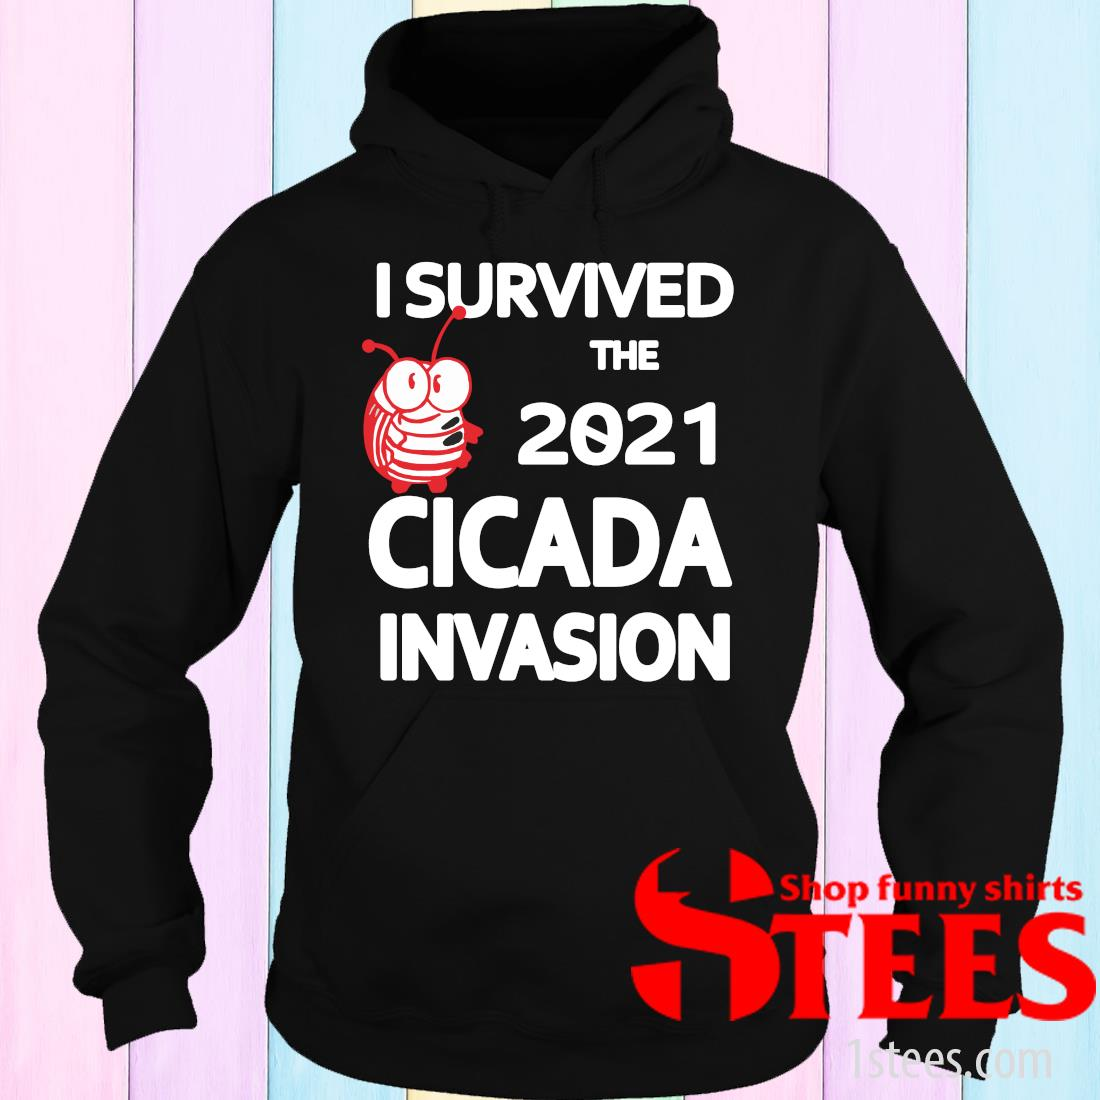 I Survived The 2021 Cicada Invasion T-Shirt hoodie